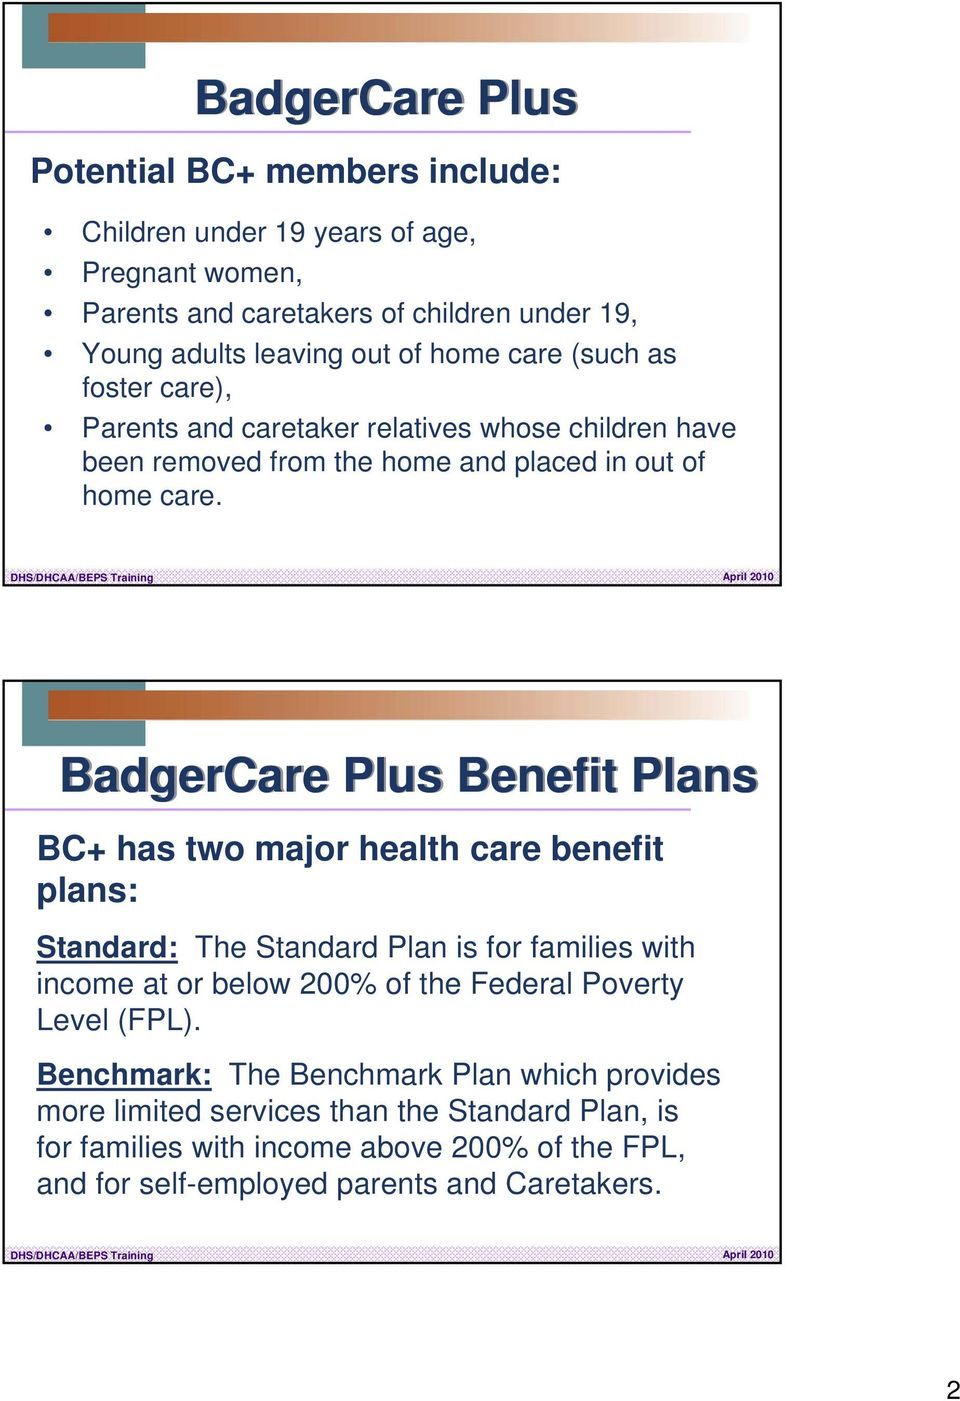 BadgerCare Plus Benefit Plans BC+ has two major health care benefit plans: Standard: The Standard Plan is for families with income at or below 200% of the Federal Poverty